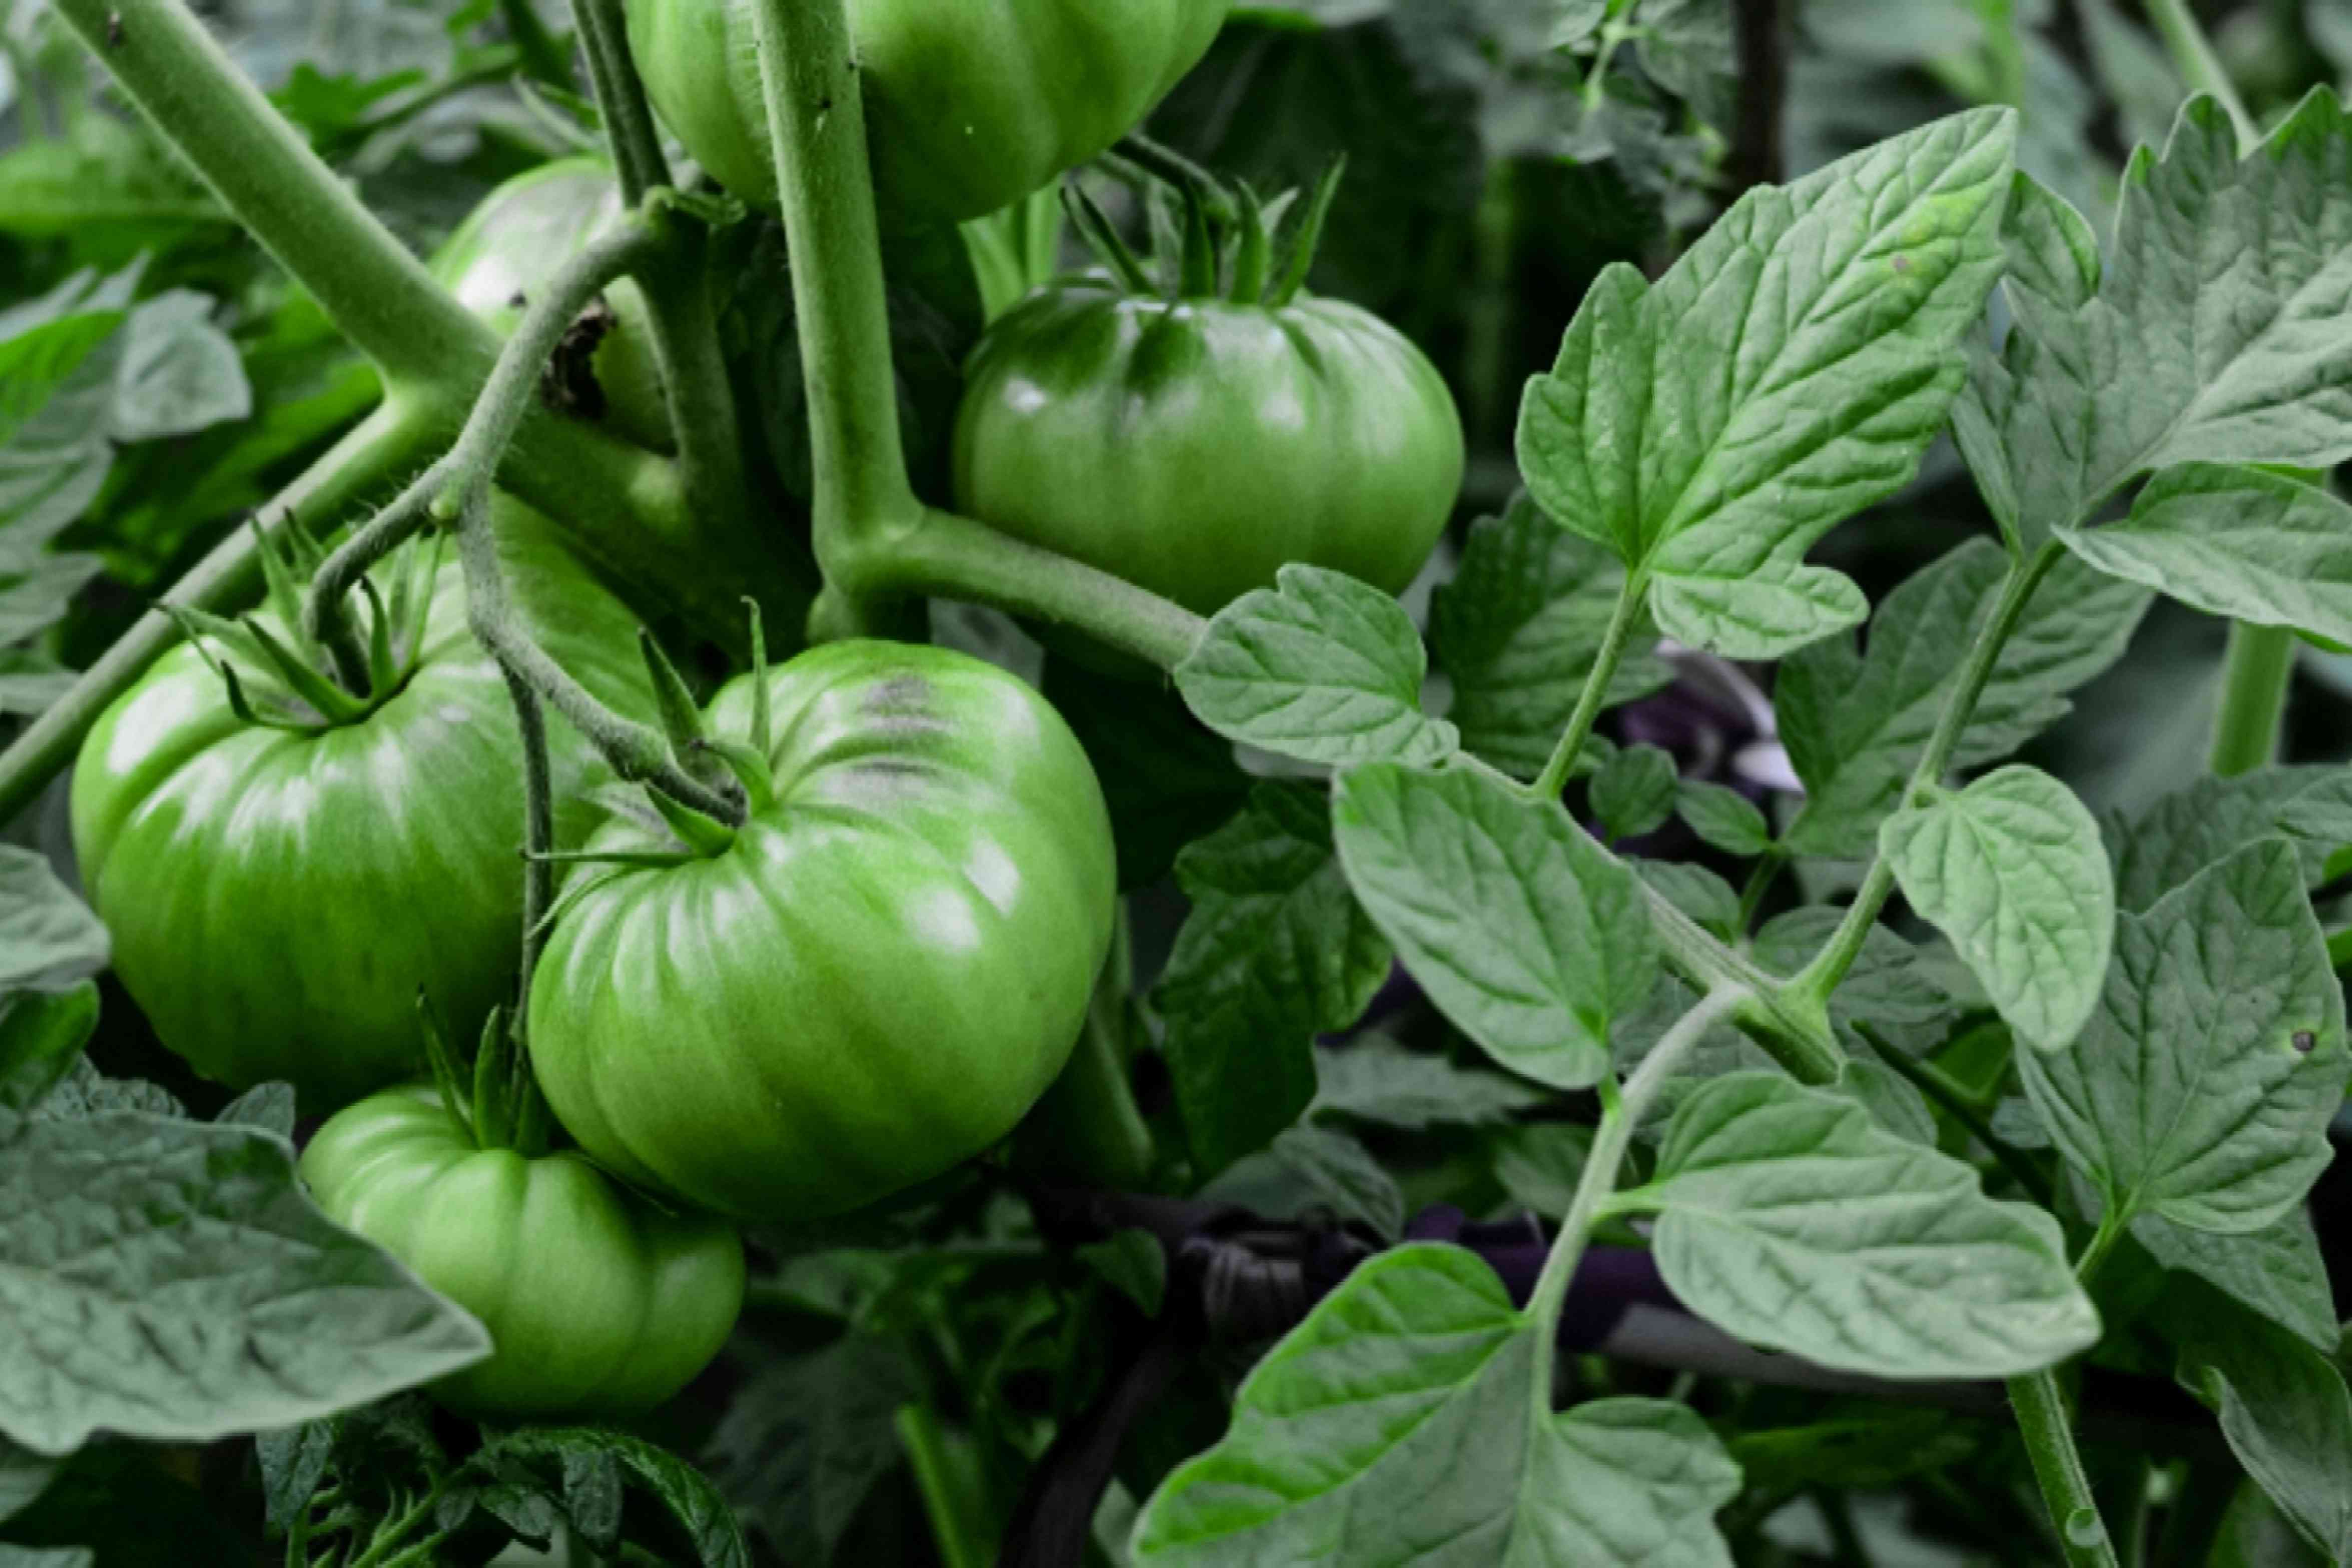 Bush beefsteak tomato plant with green tomatoes hanging on vines and leaves